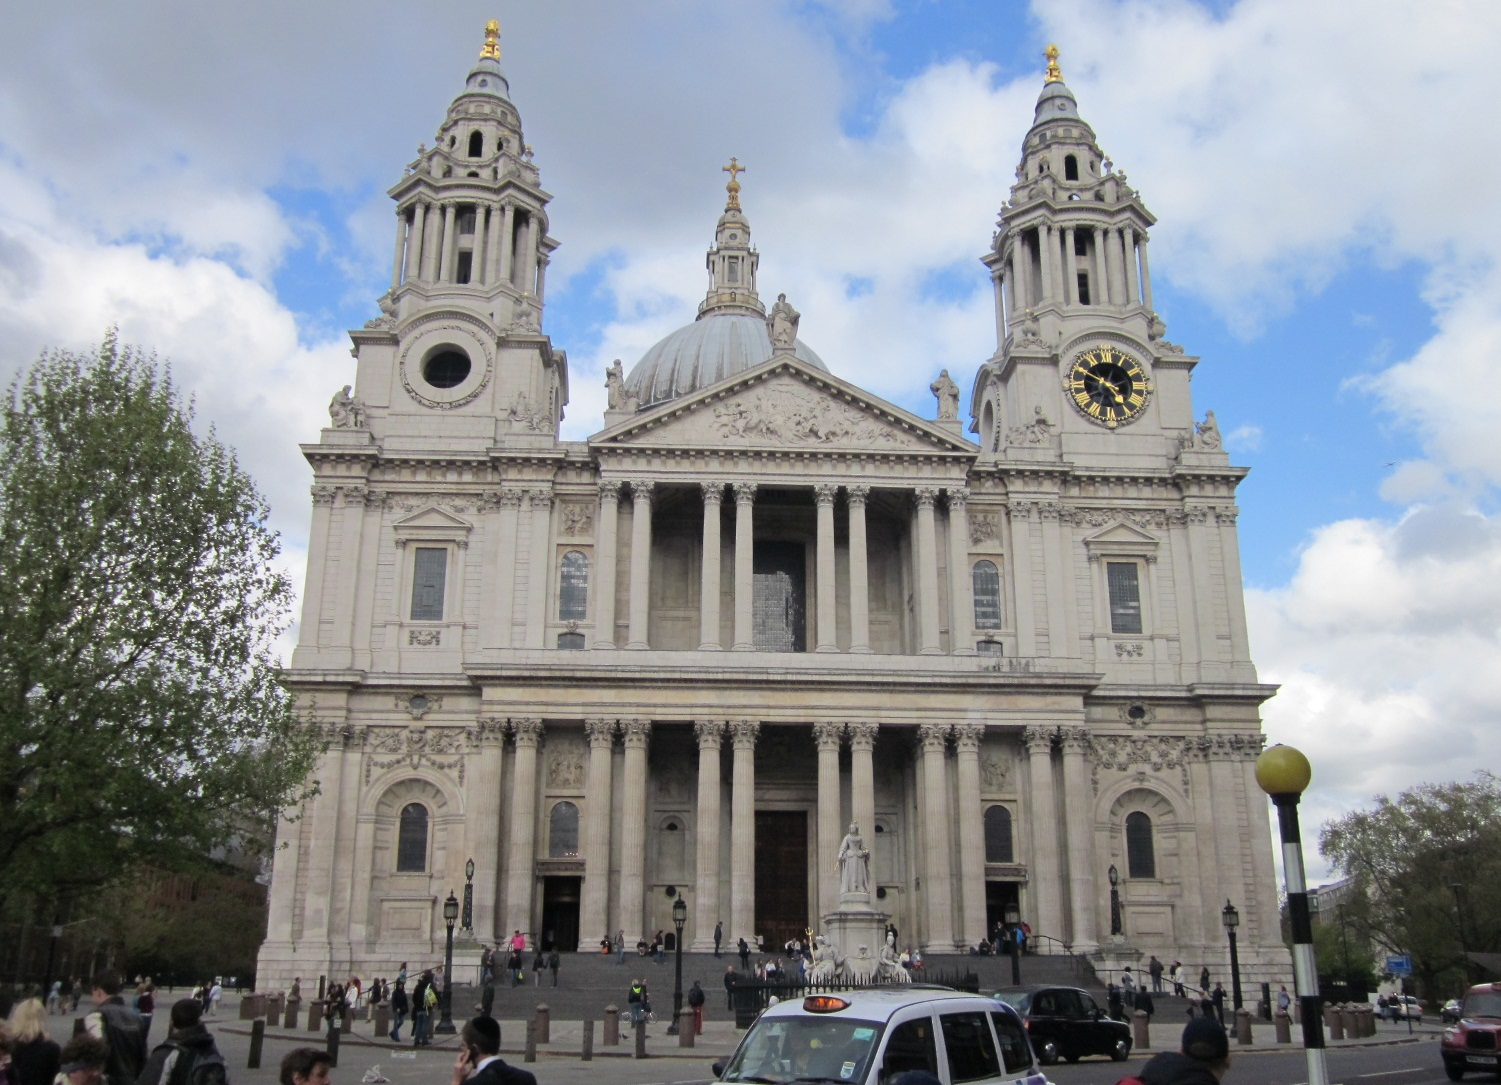 St Paul's Cathedral - Wikimedia Commons